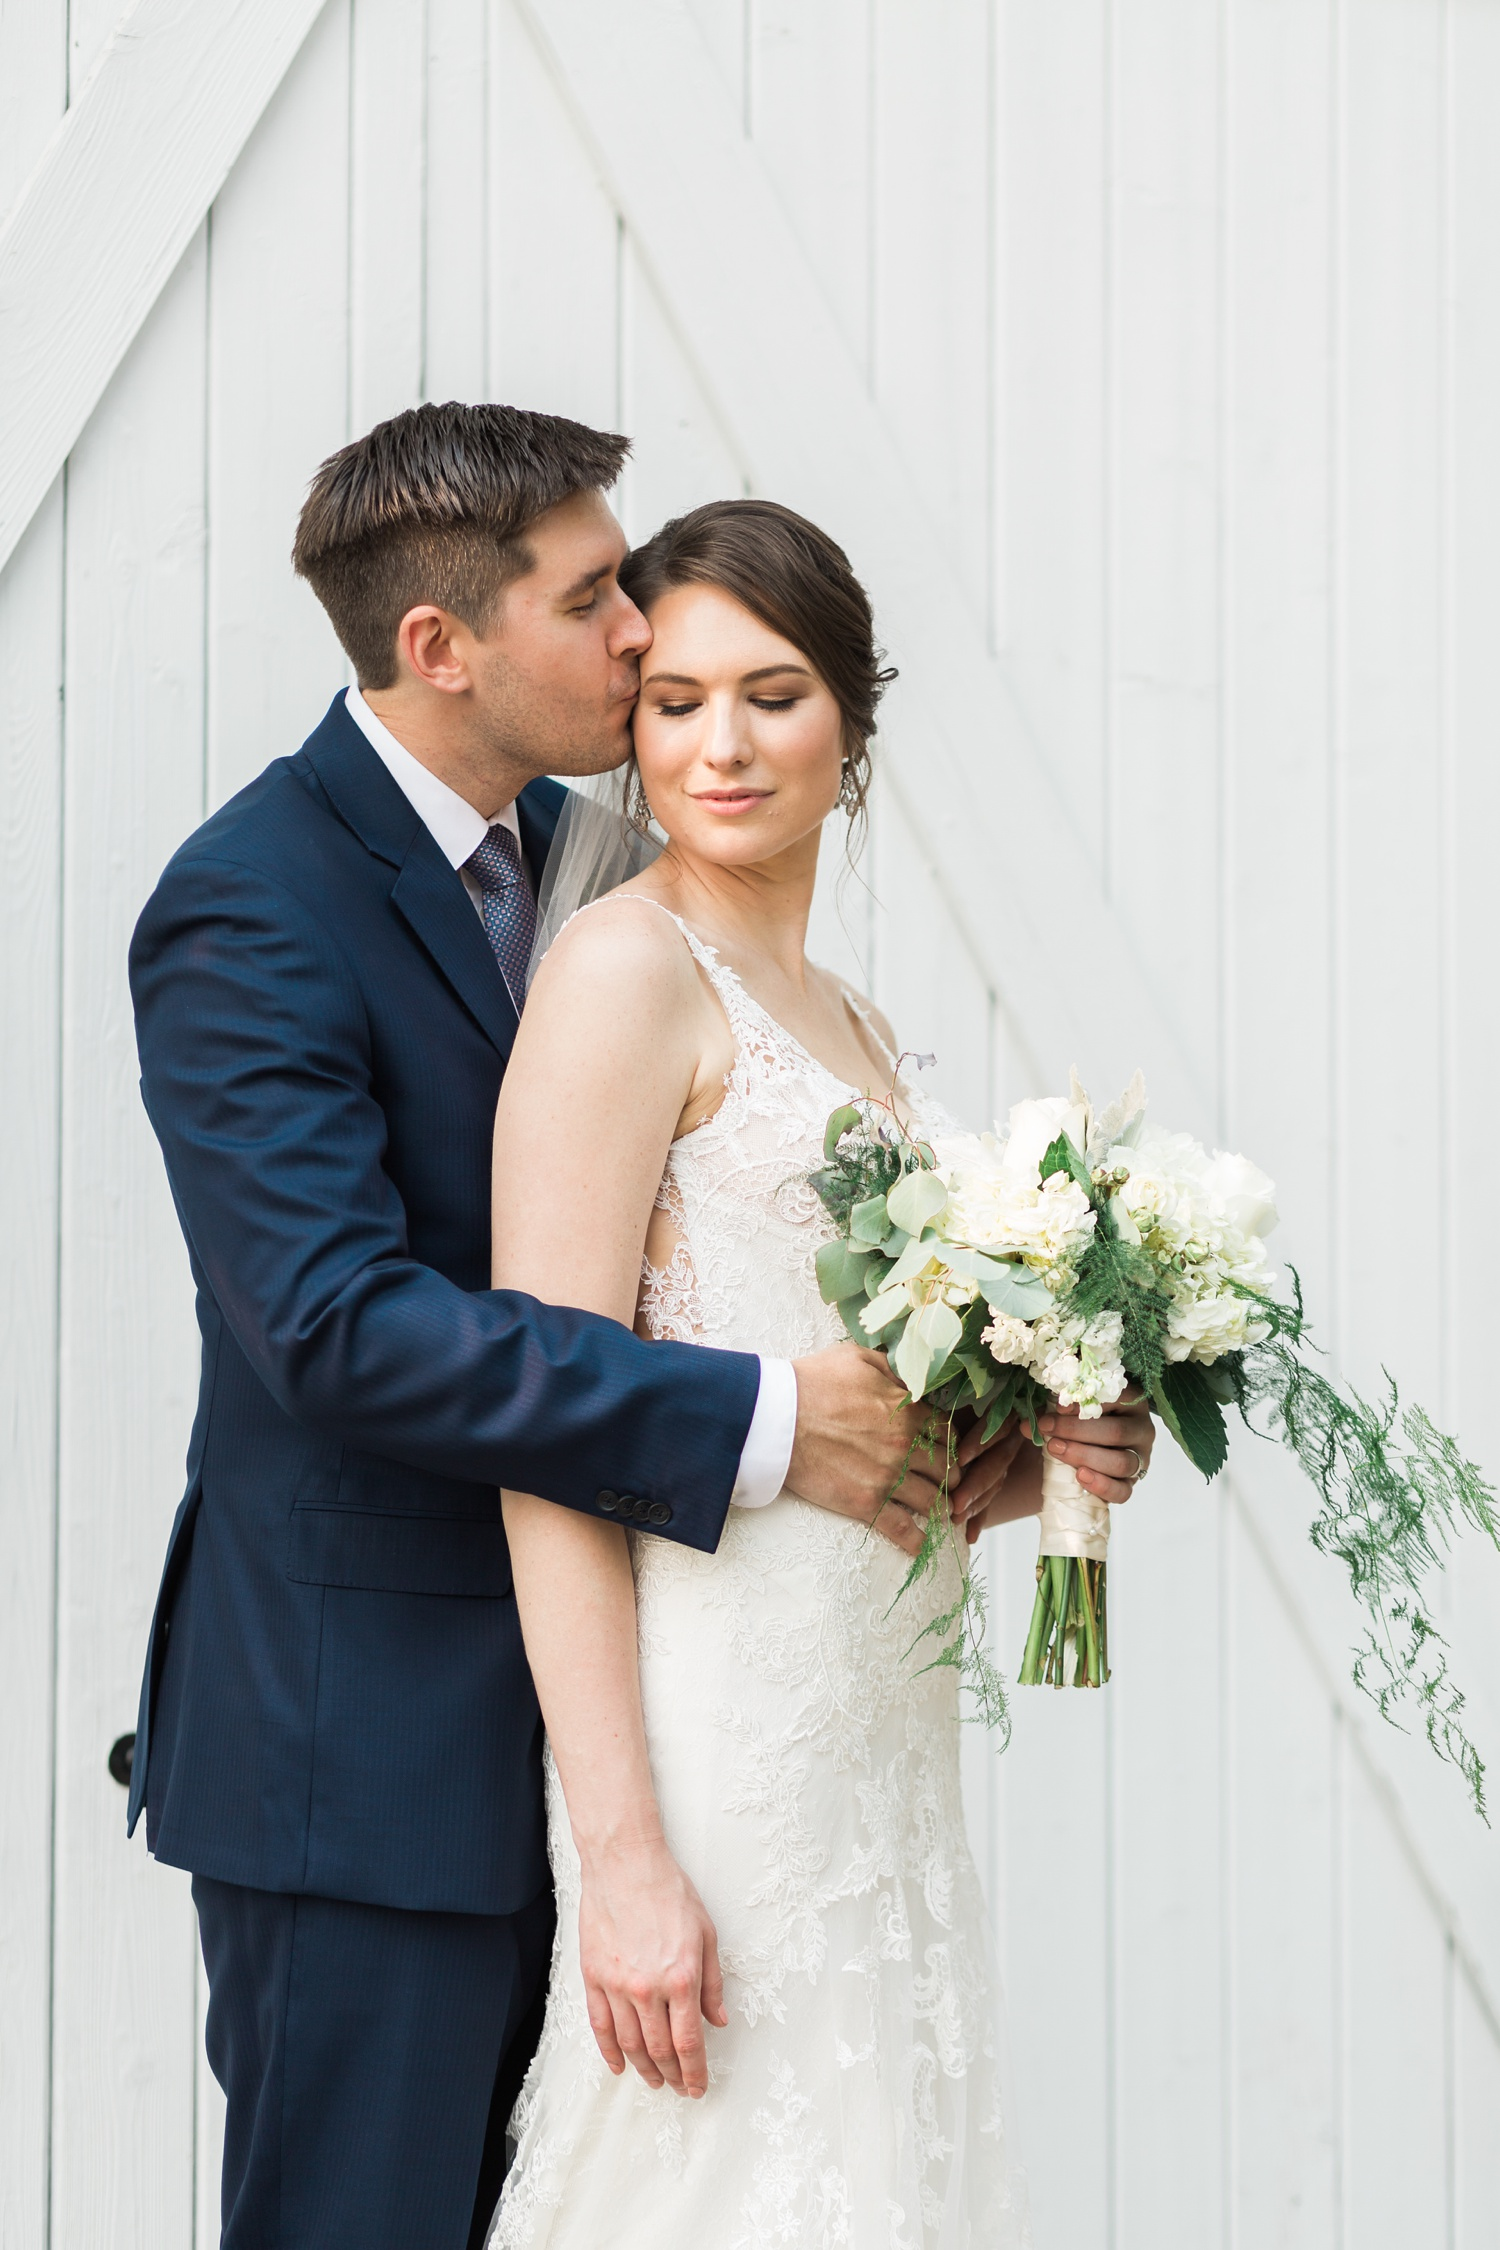 A groom kisses his bride before their wedding at Chateau Lill in Woodinville, a wedding venue near Seattle, WA.   Joanna Monger Photography   Seattle & Snohomish Photographer